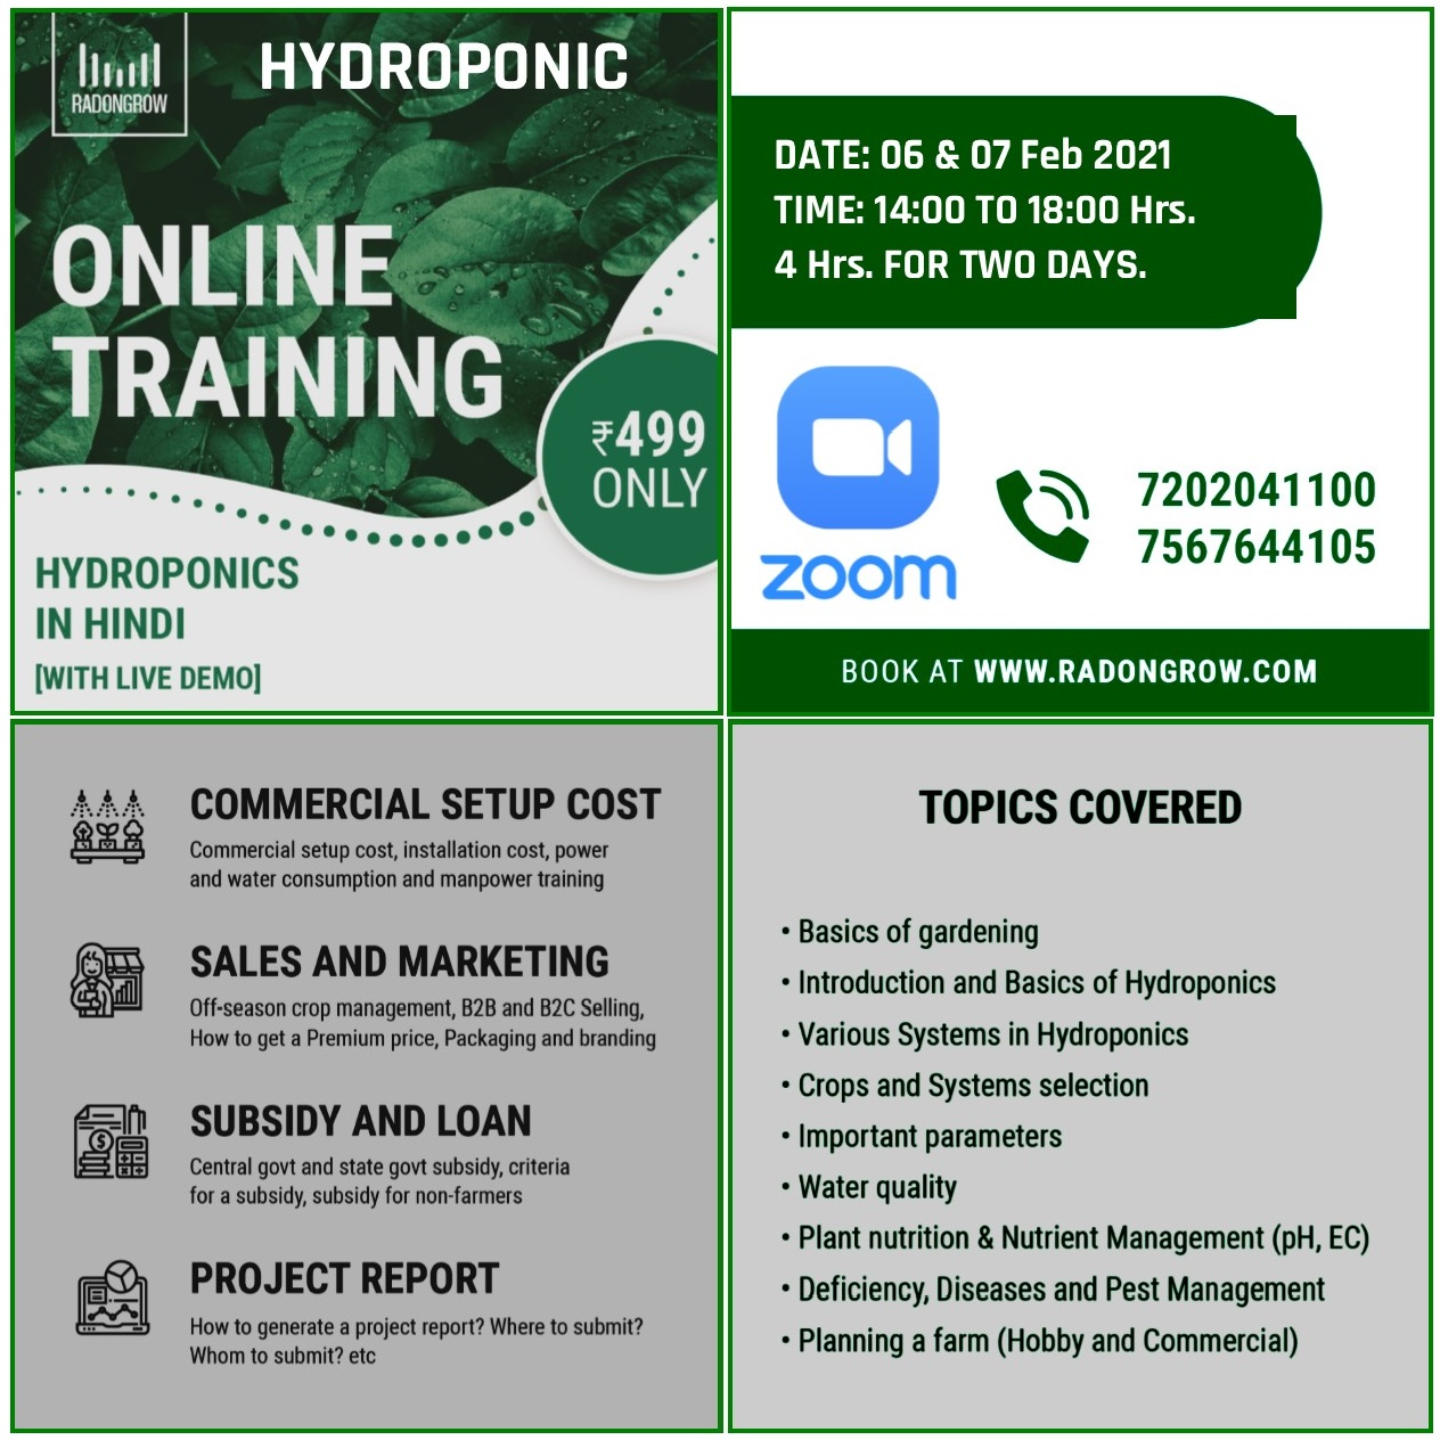 Hydroponic Training ( IN HINDI) 06, February AND 07, February 2021